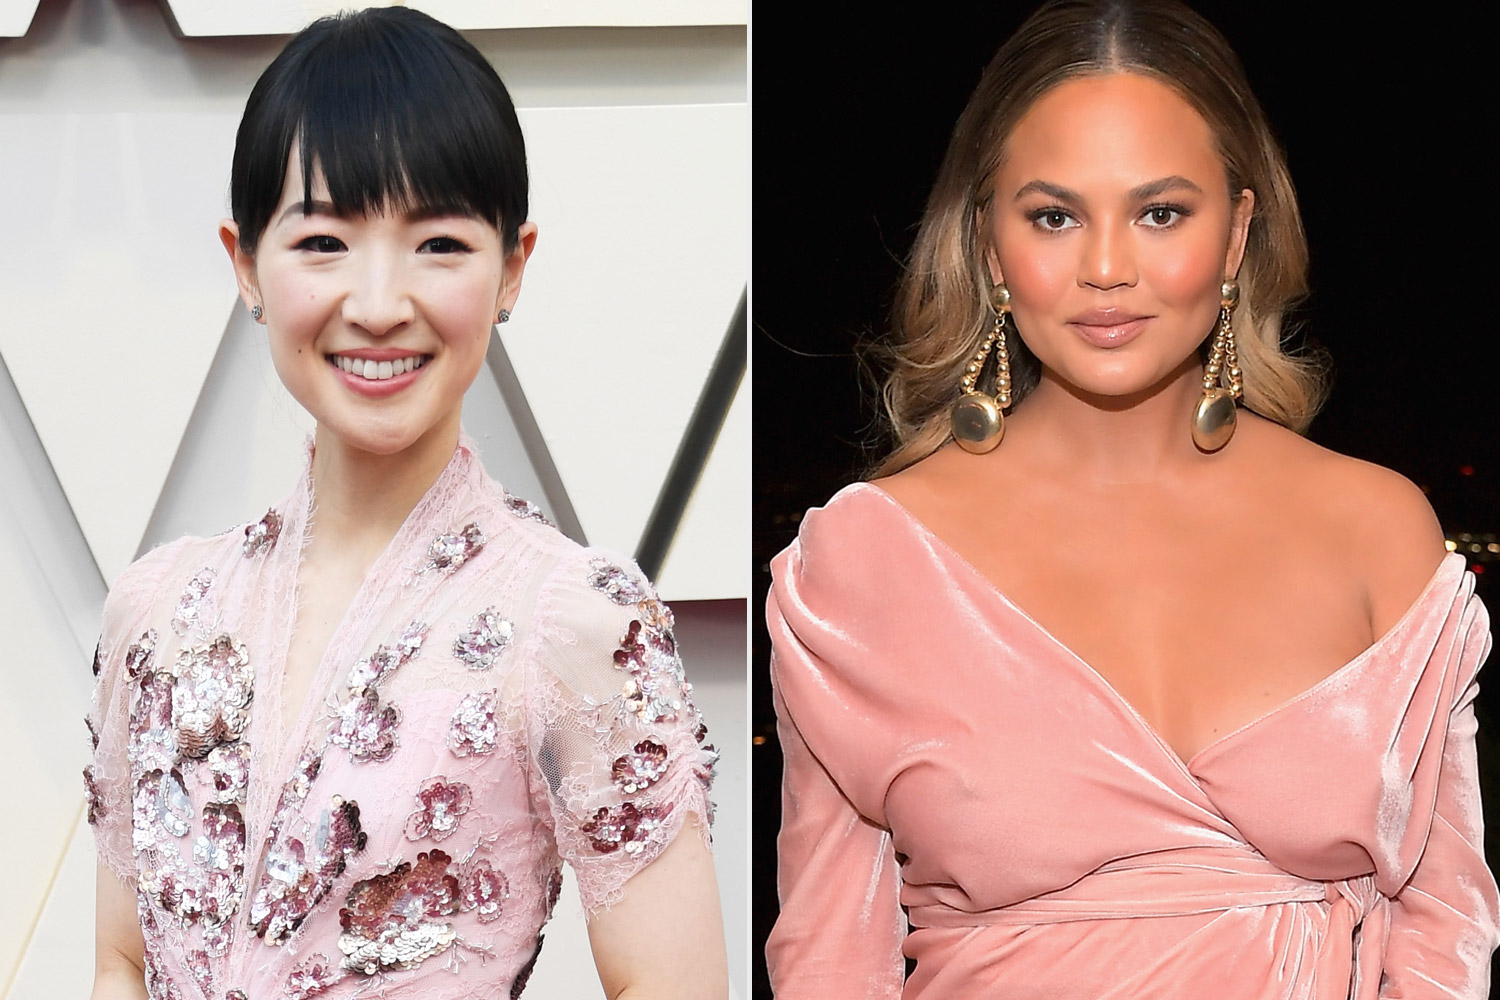 Chrissy Teigen and Marie Kondo